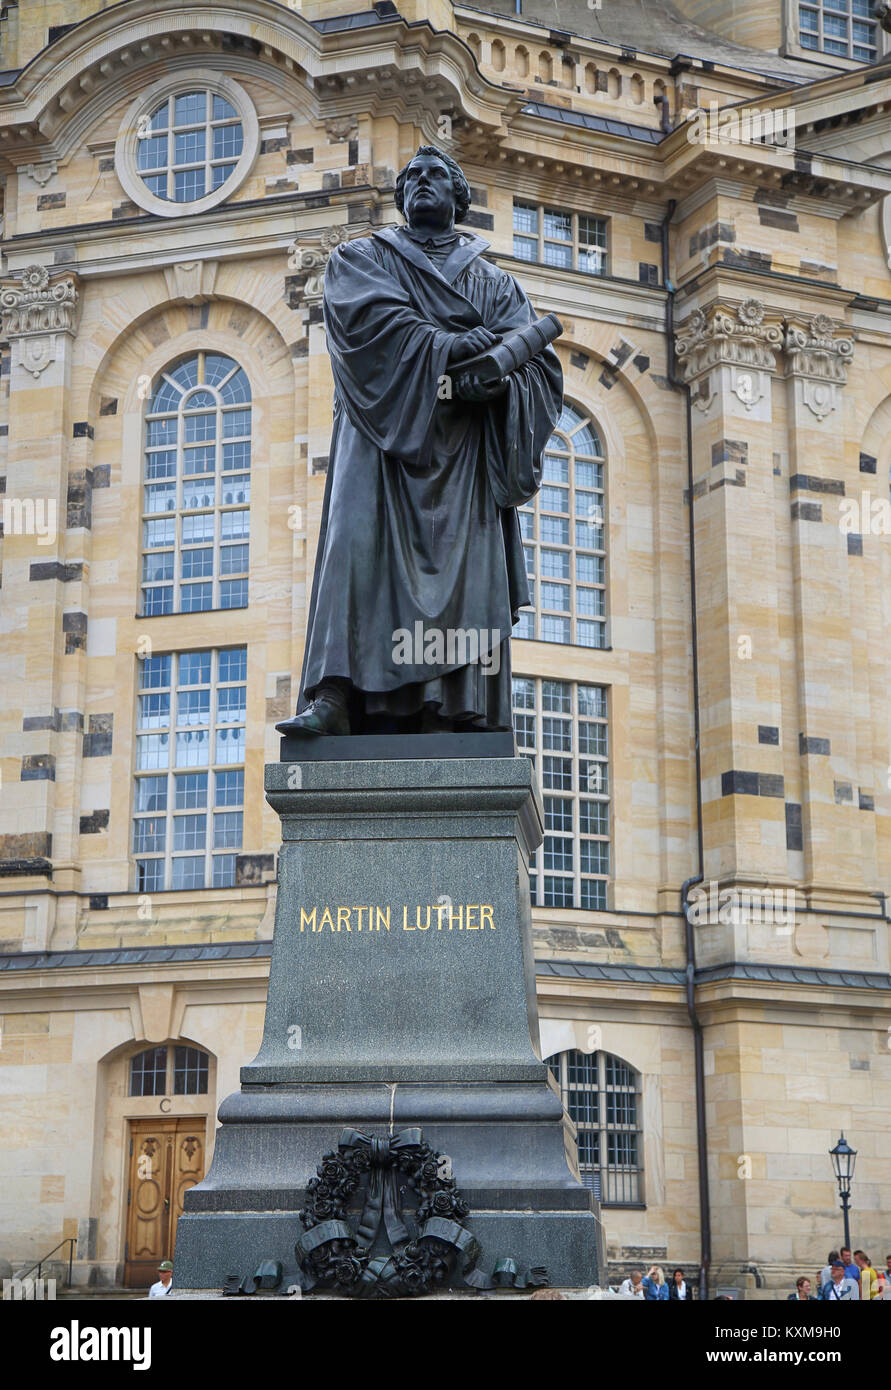 DRESDEN, GERMANY – AUGUST 13, 2016: Frauenkirche (Our Lady church) and statue Martin Luther in the center of old Stock Photo